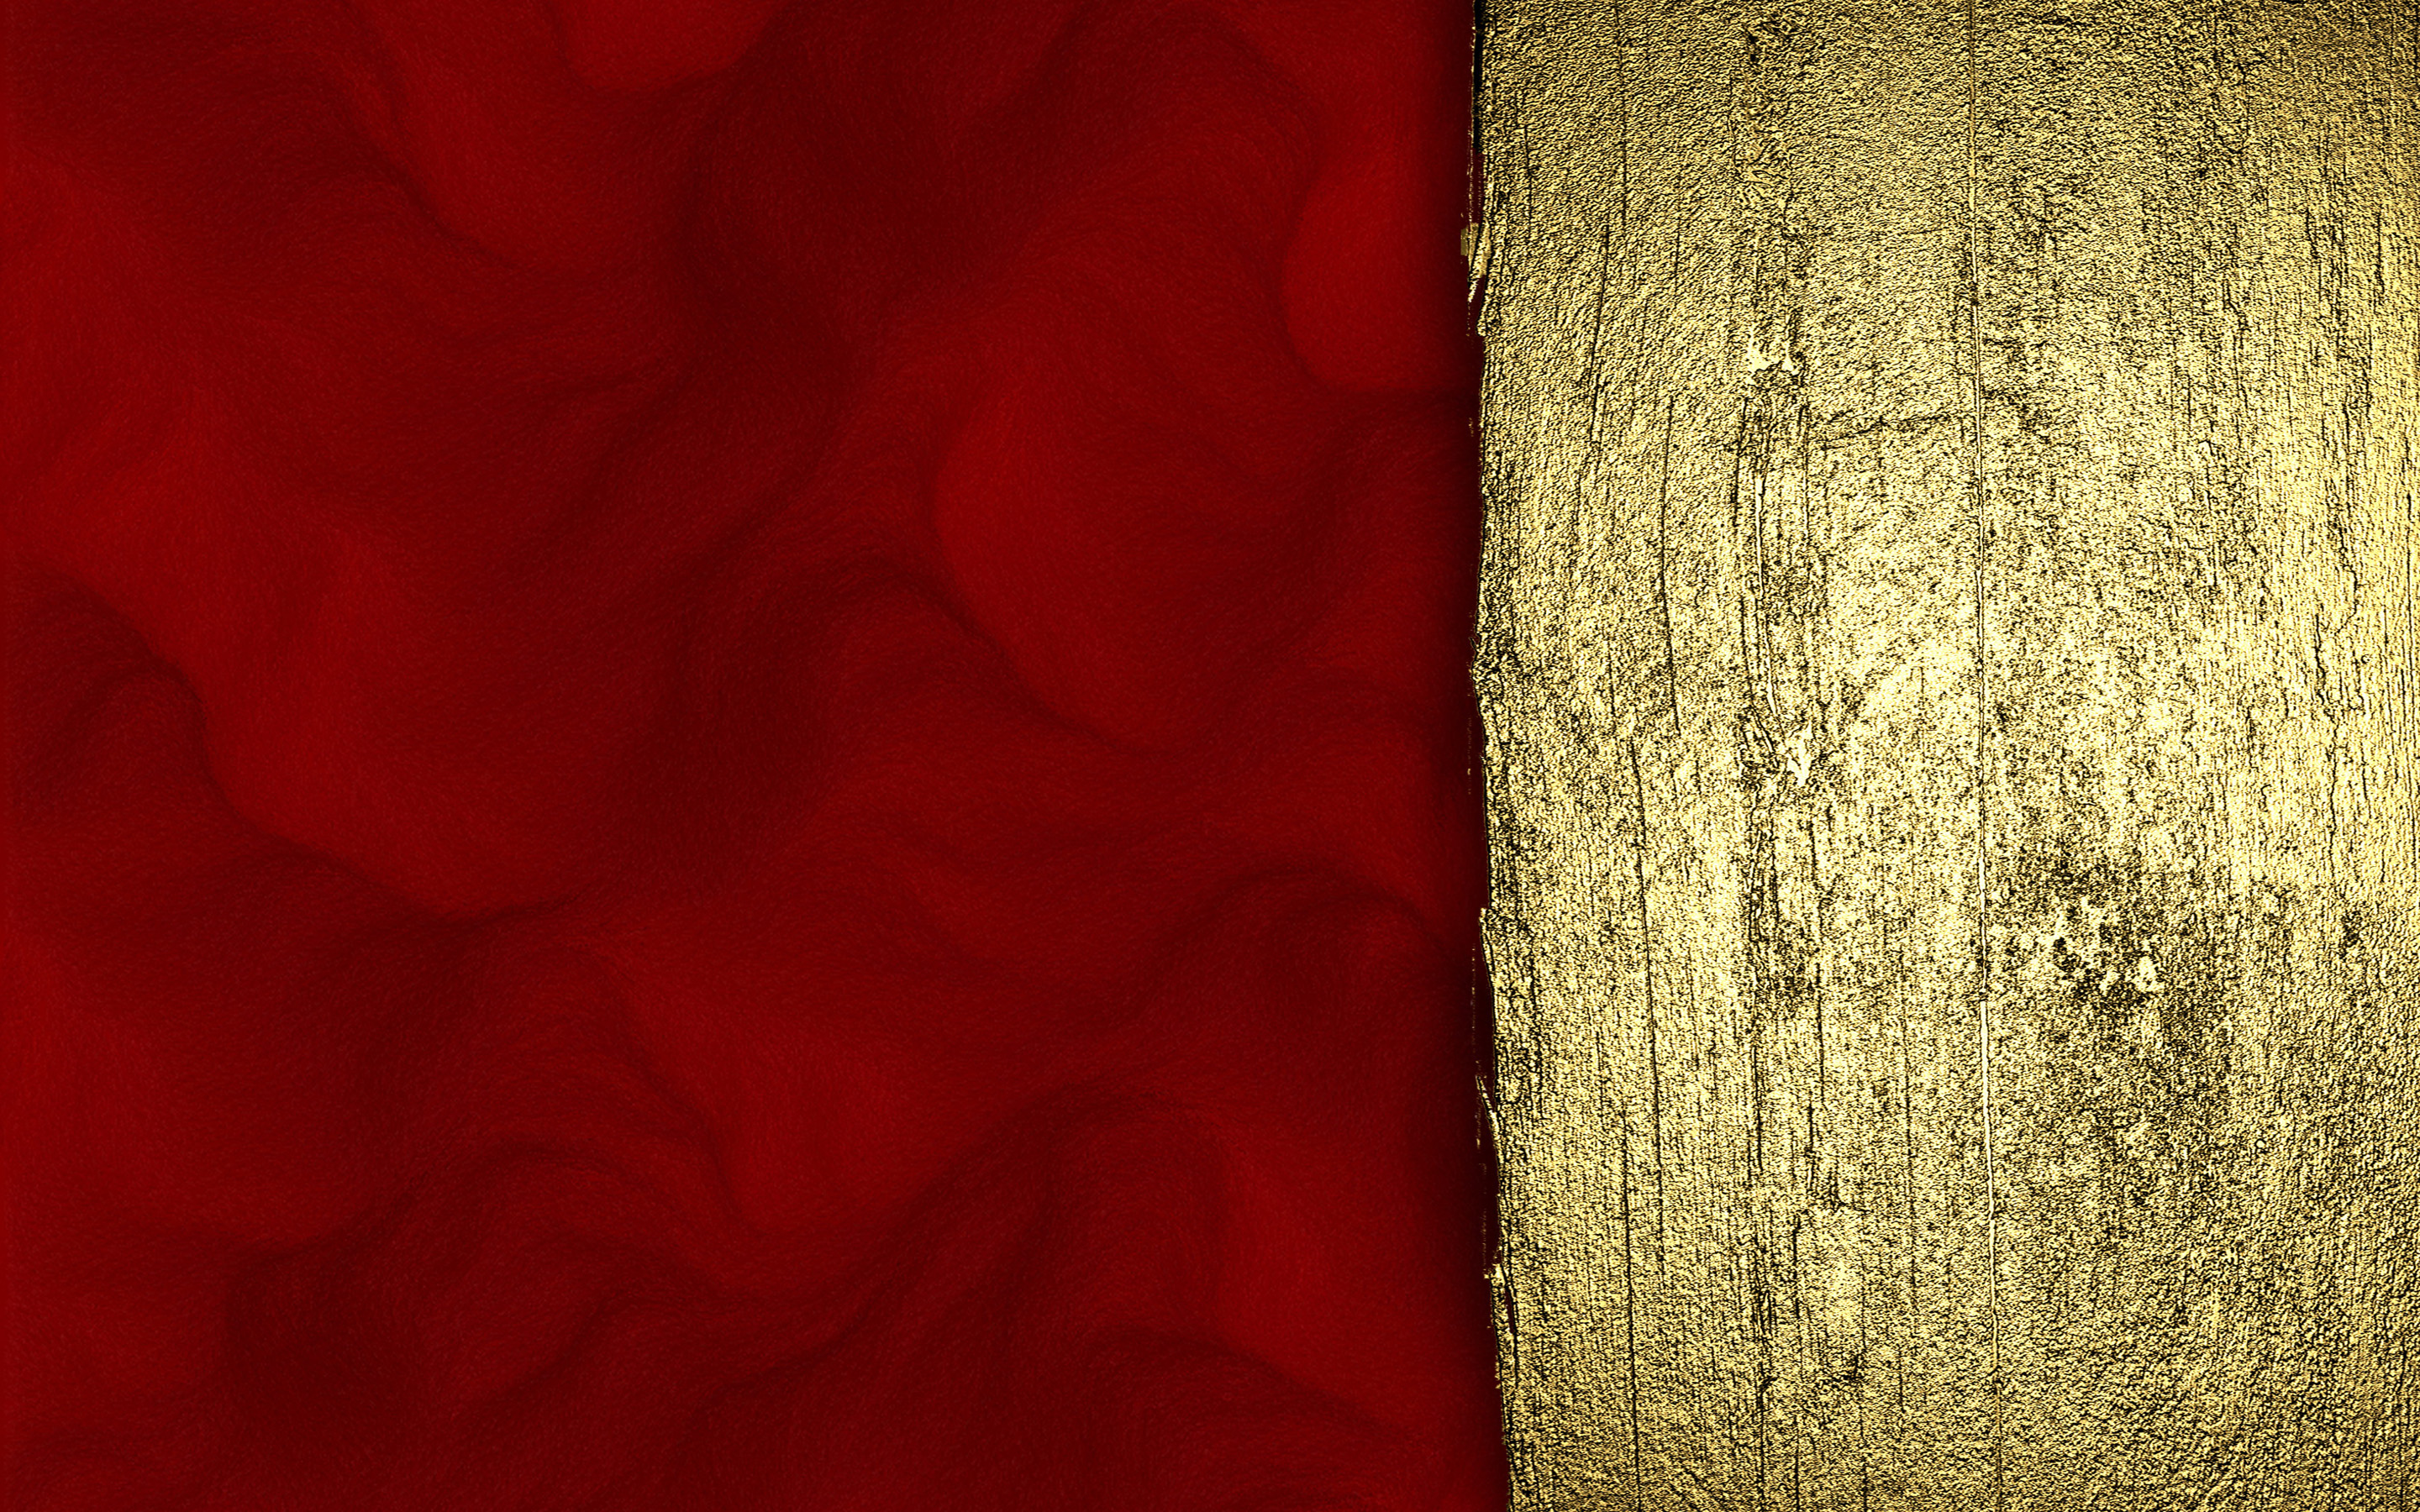 Red And Gold Chinese Wallpaper 2880x1800